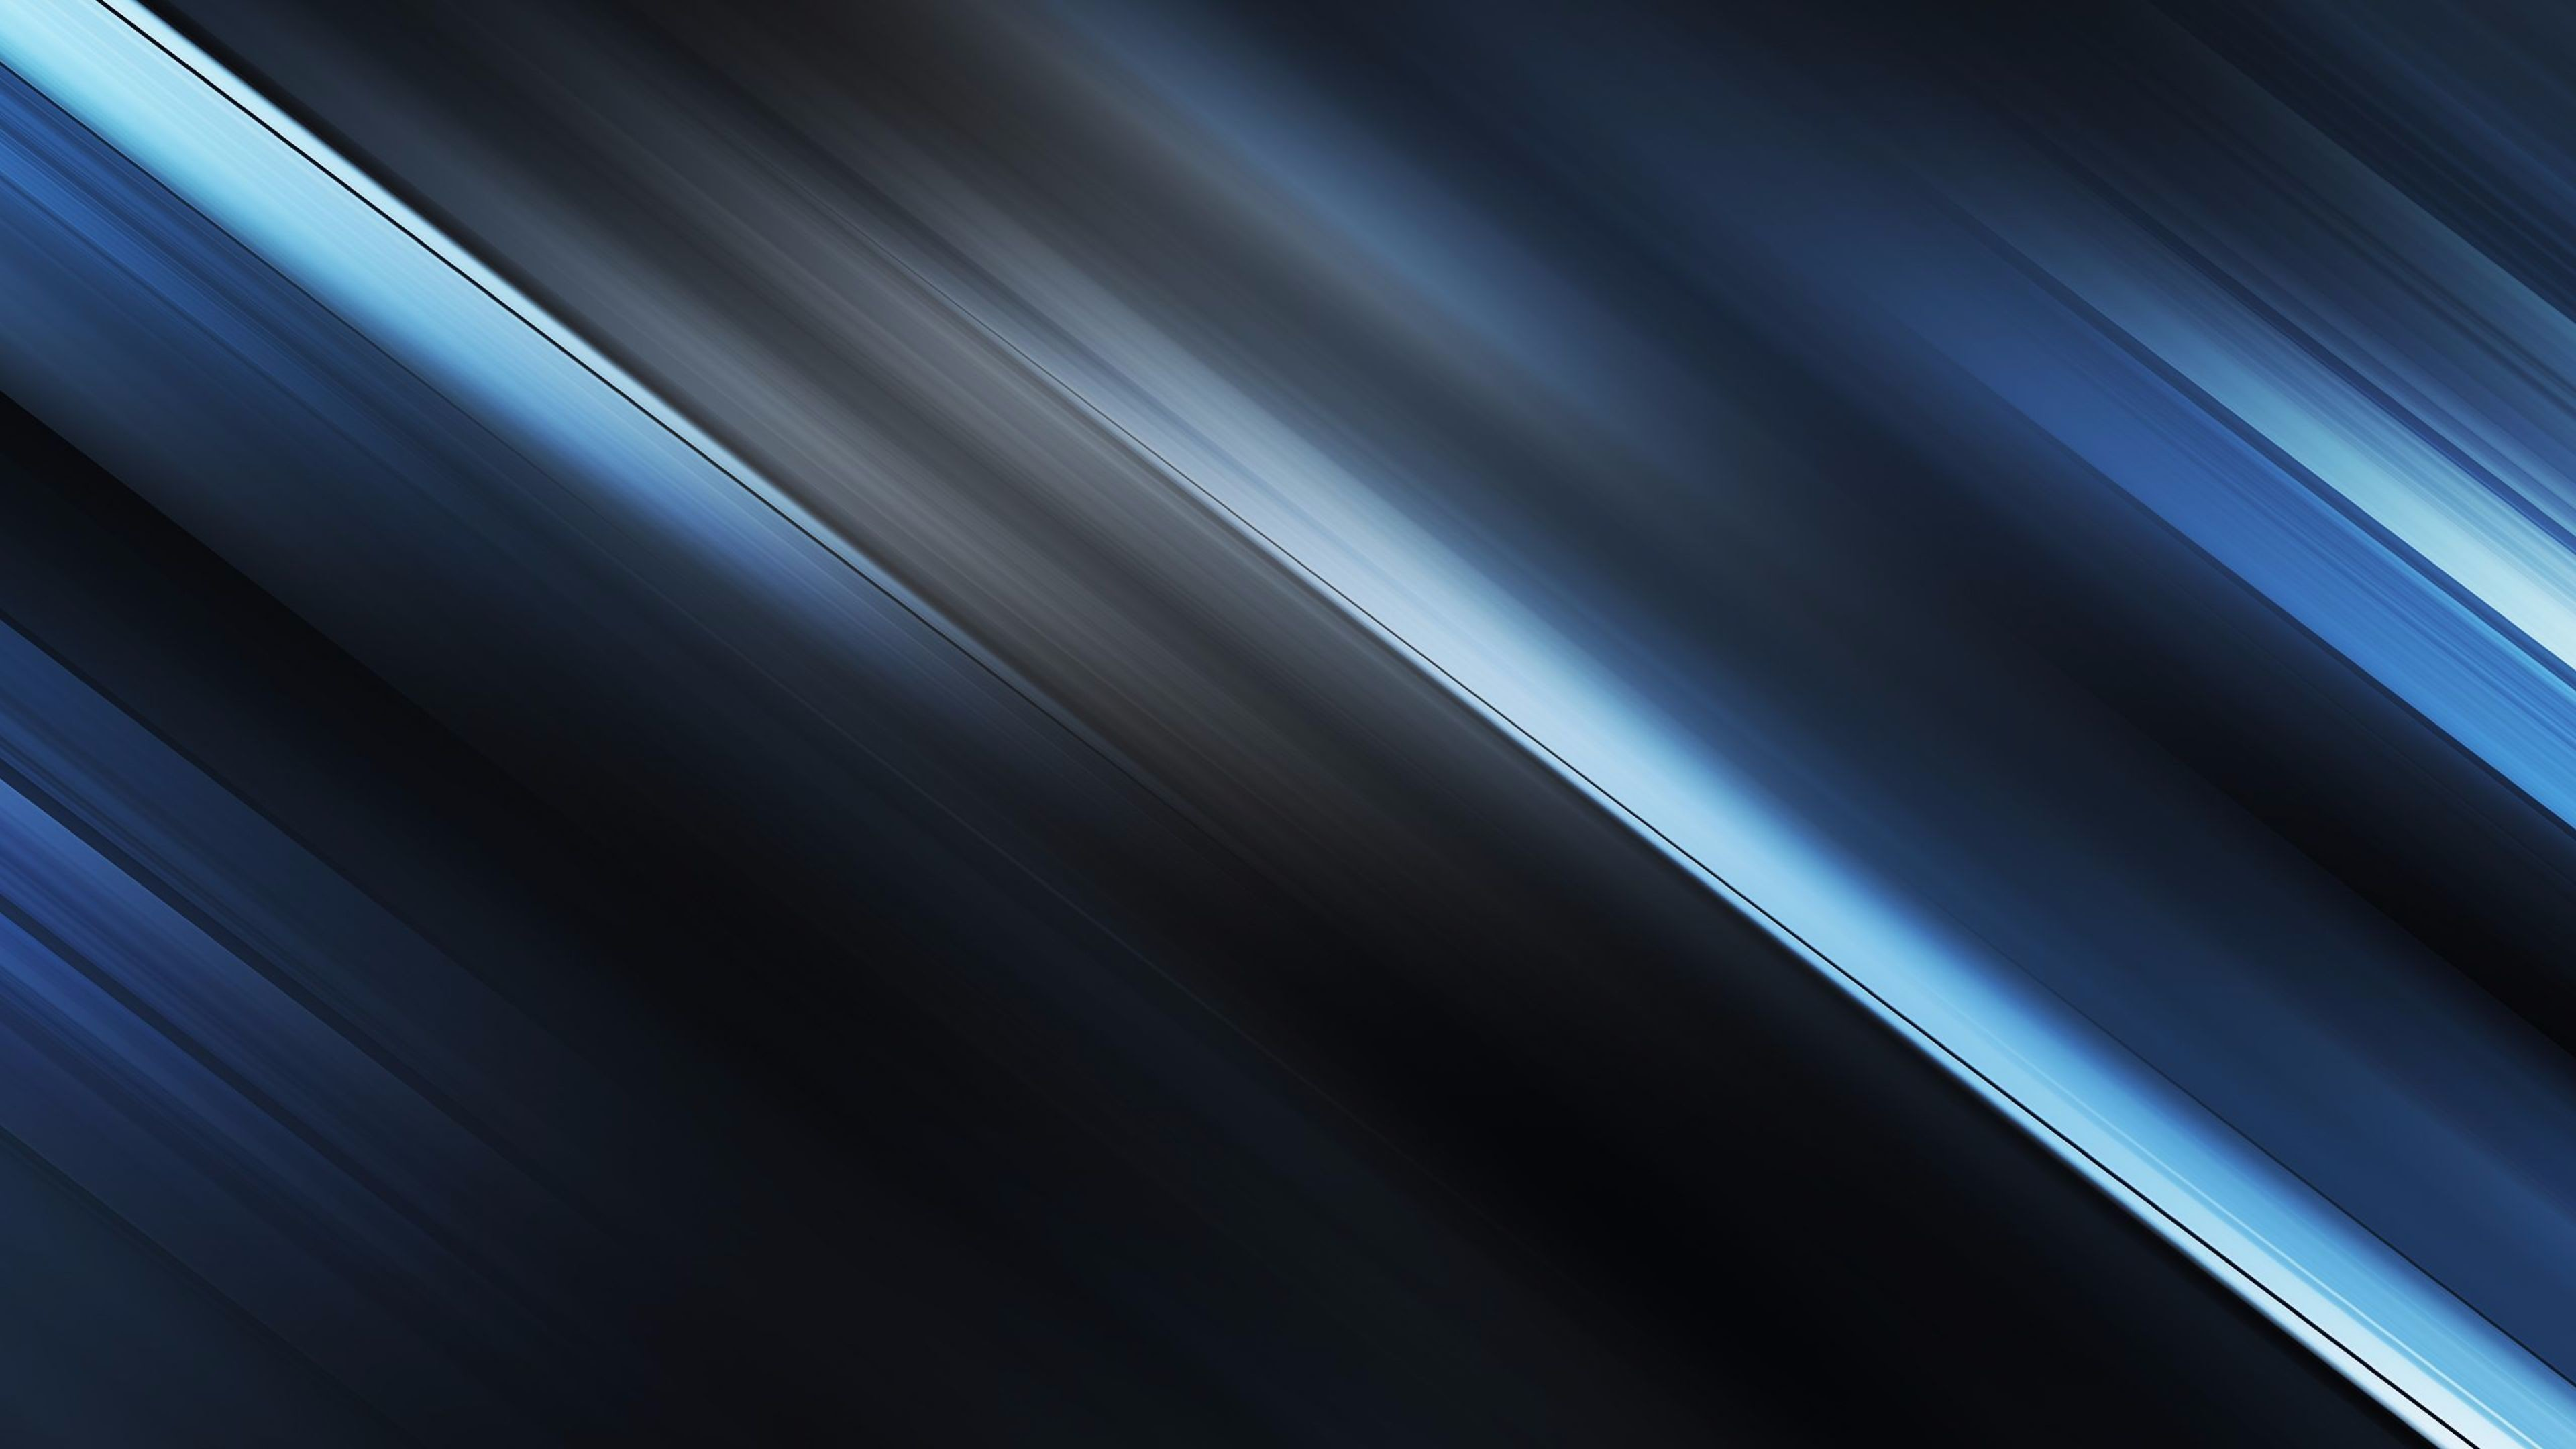 Abstract Computer Backgrounds 69 Pictures